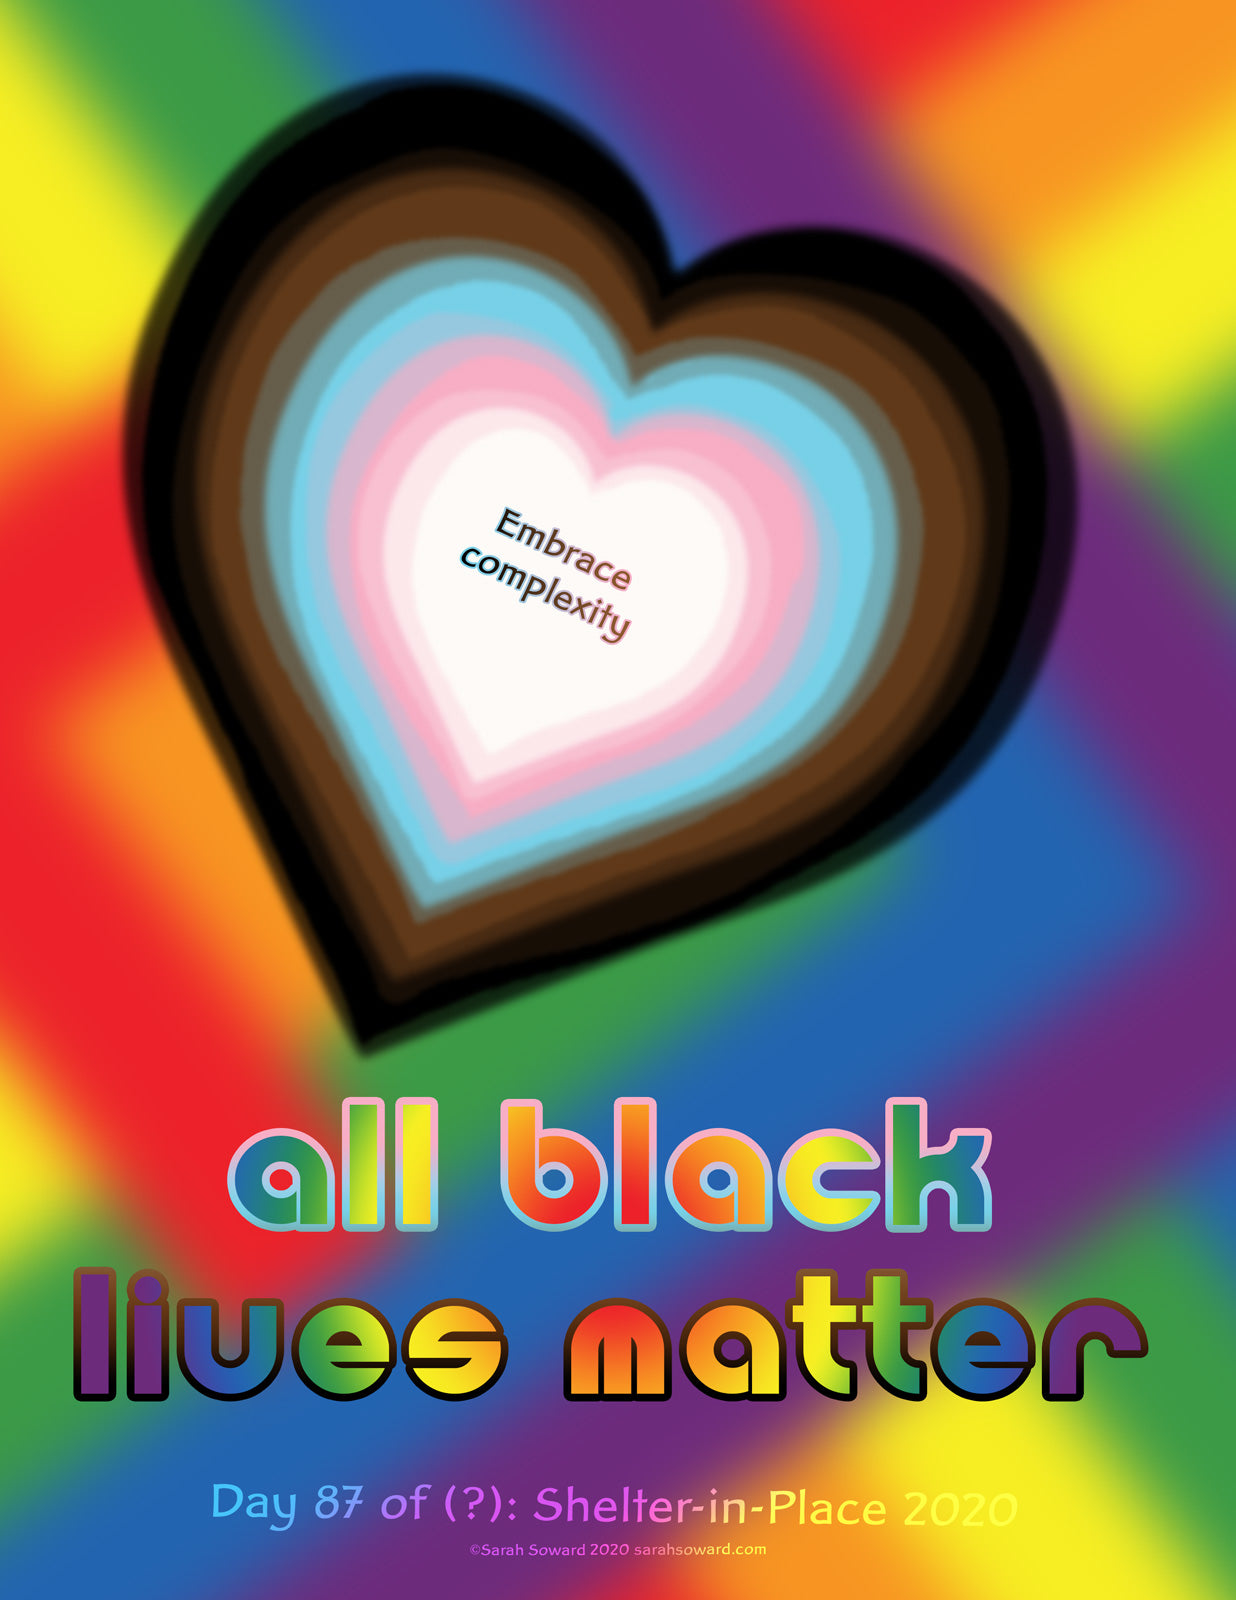 The LGBTQ+ Pride flag colors are featured in this image. The flag was rearranged a bit. the rainbow colors are a big zigzag in the background. The trans, POC, NB, and more colors are a heart i the foreground. The text reads, All Black Lives Matter, Embrace complexity.